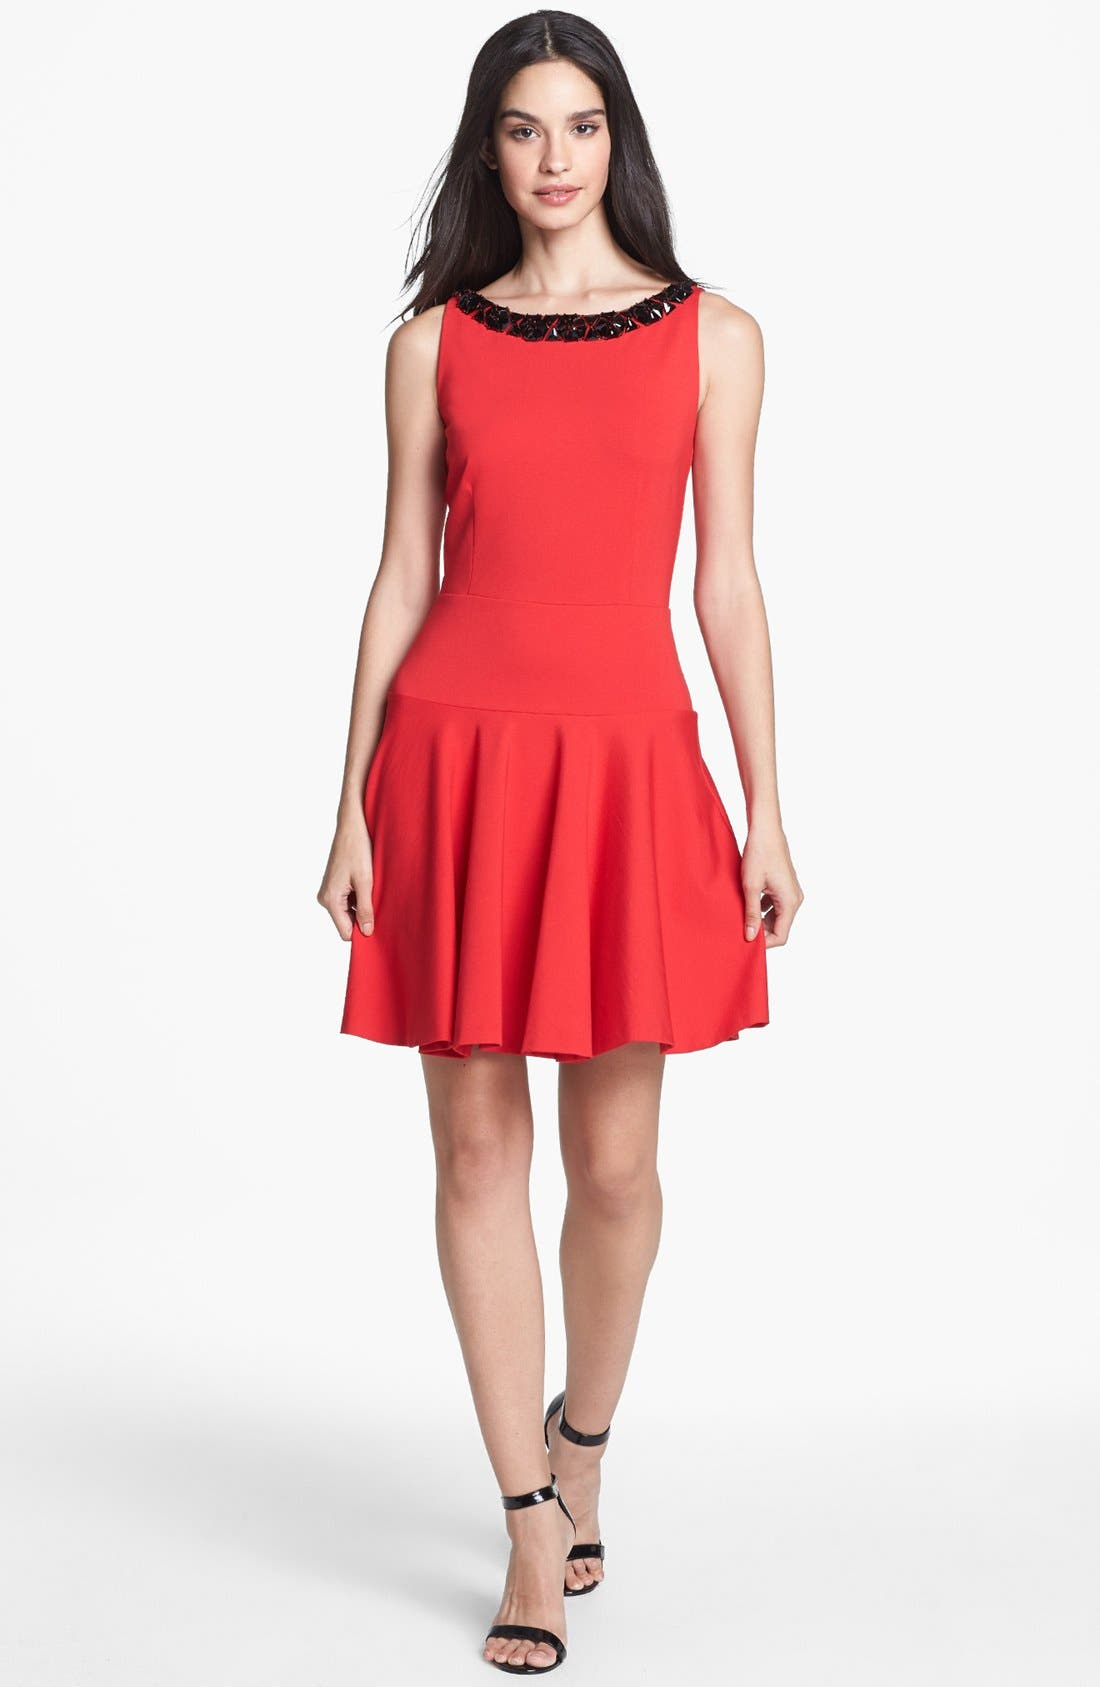 Alternate Image 1 Selected - ERIN erin fetherston 'Eleanor' Embellished Fit & Flare Dress